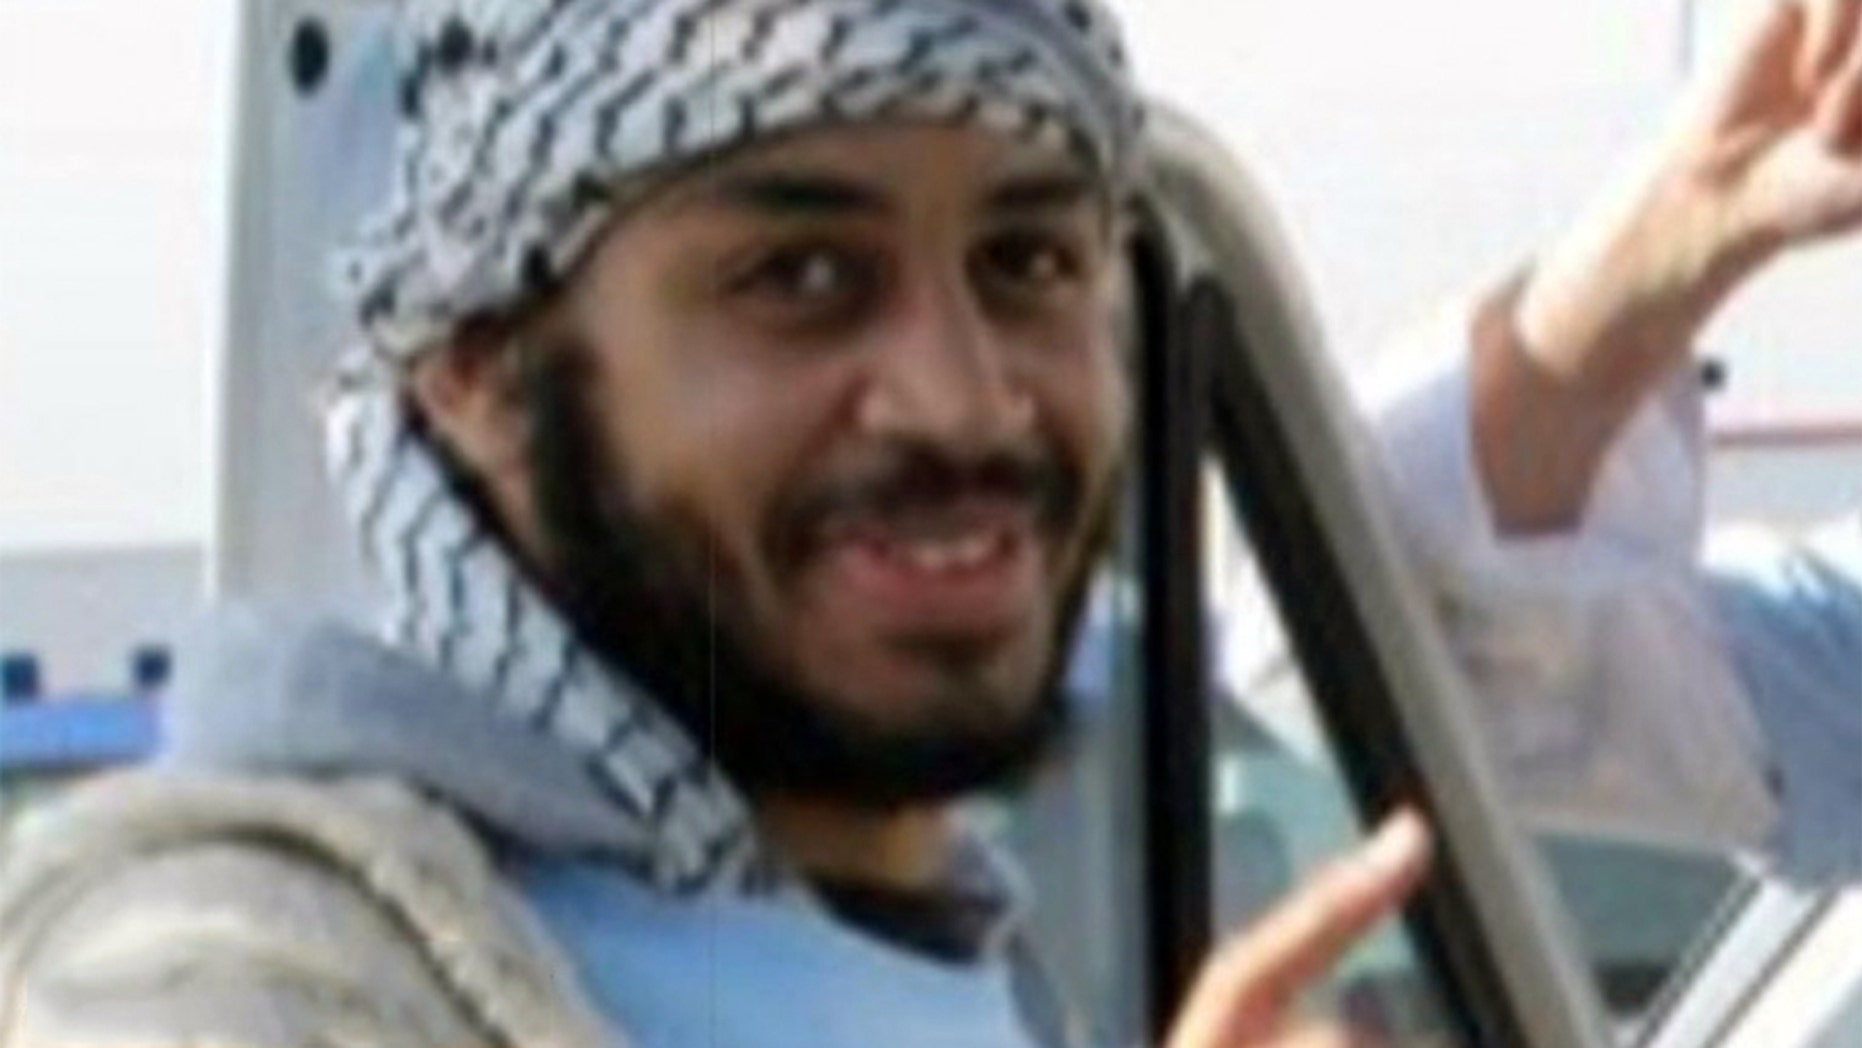 Alexanda Kotey is one of the two members of 'The Beatles' captured by U.S.-backed forces in Syria last month.